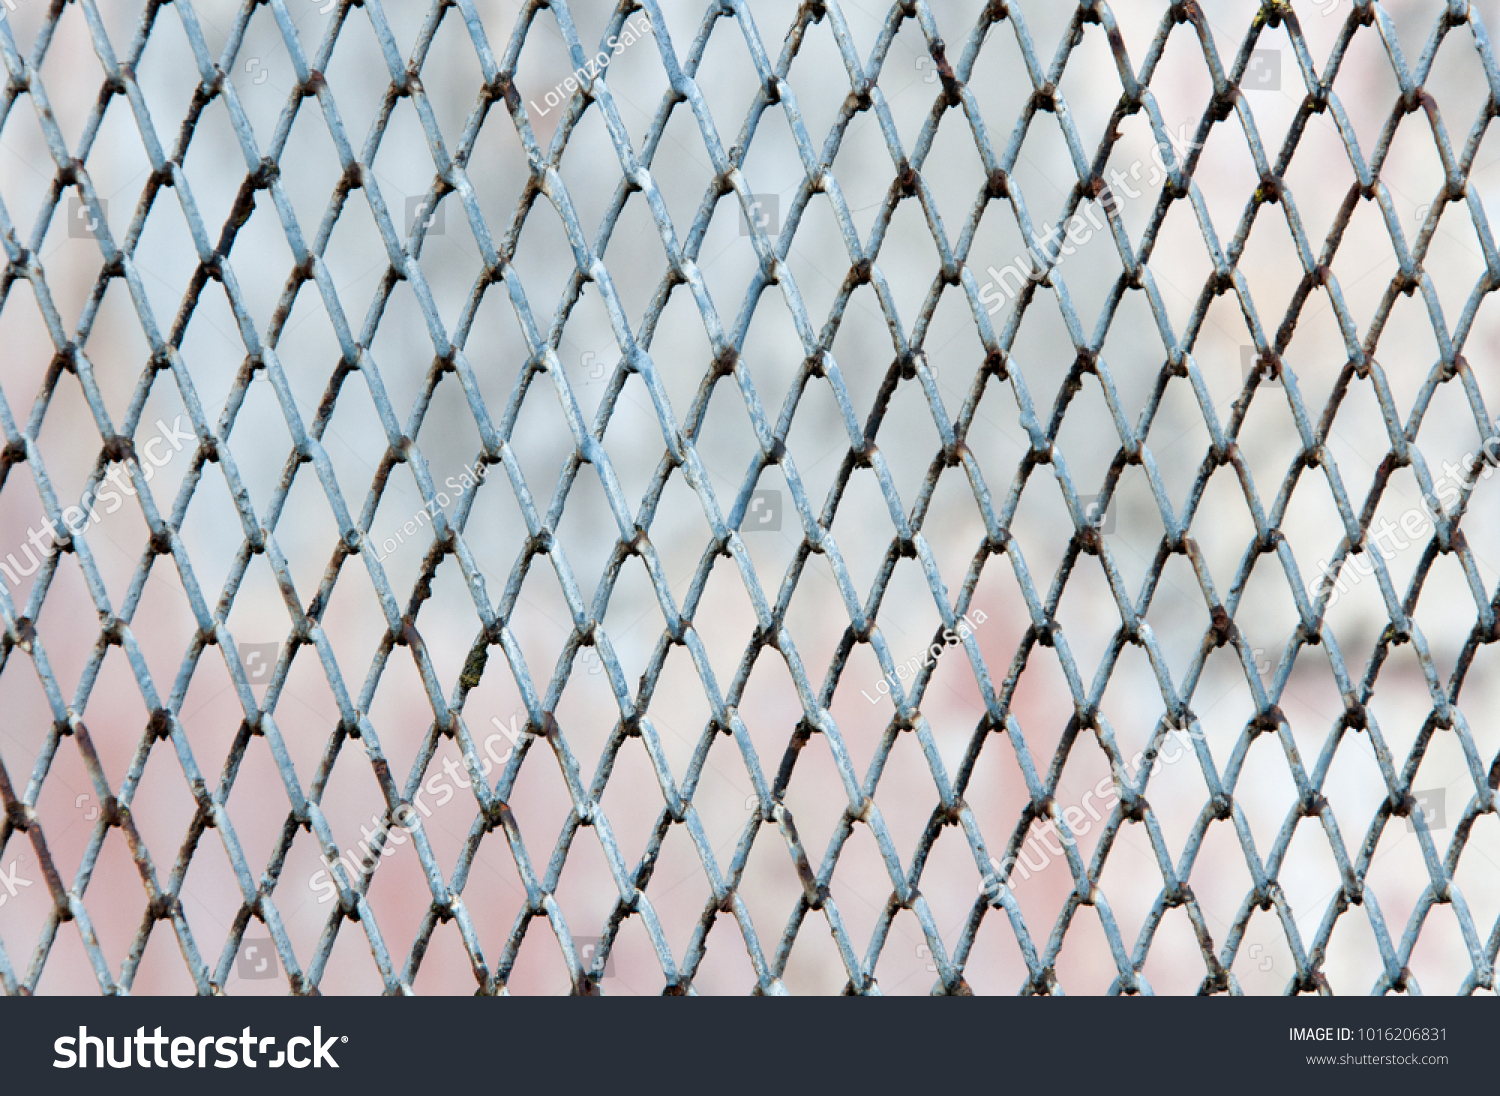 Wire Net Steel Fence Texture Old Stock Photo (Edit Now) 1016206831 ...